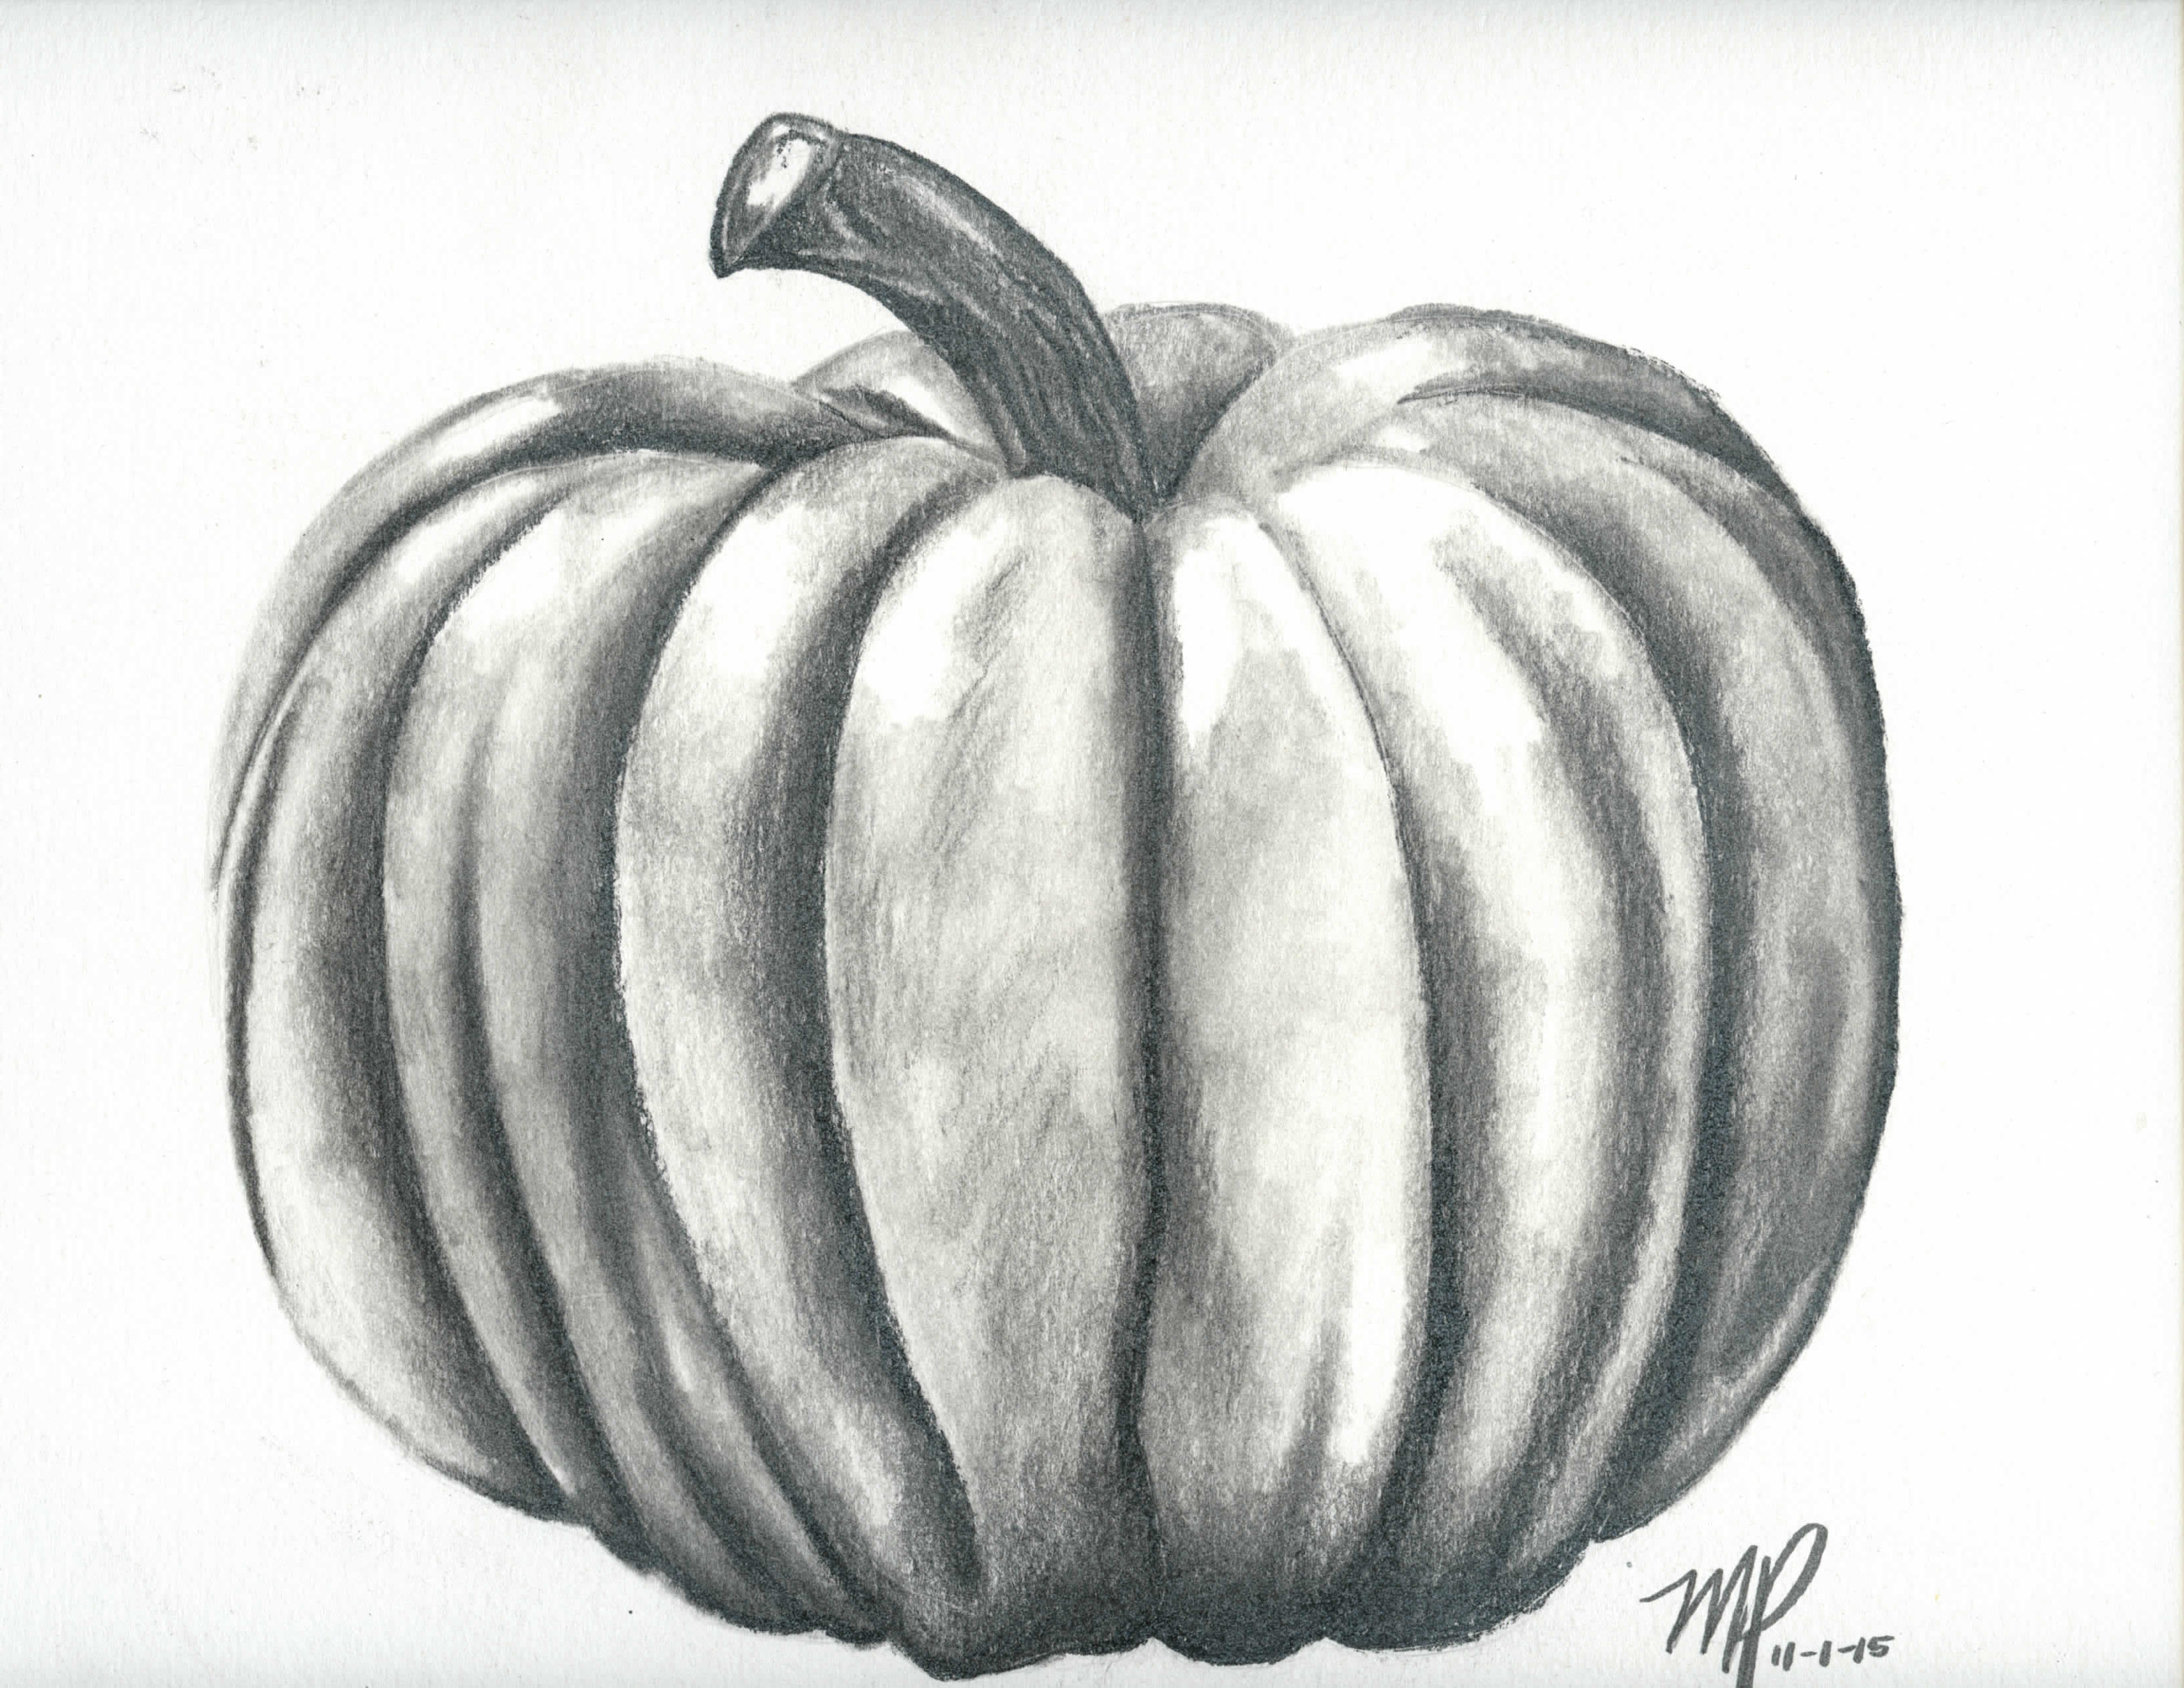 Drawn pumpkin charcoal And I They blend to